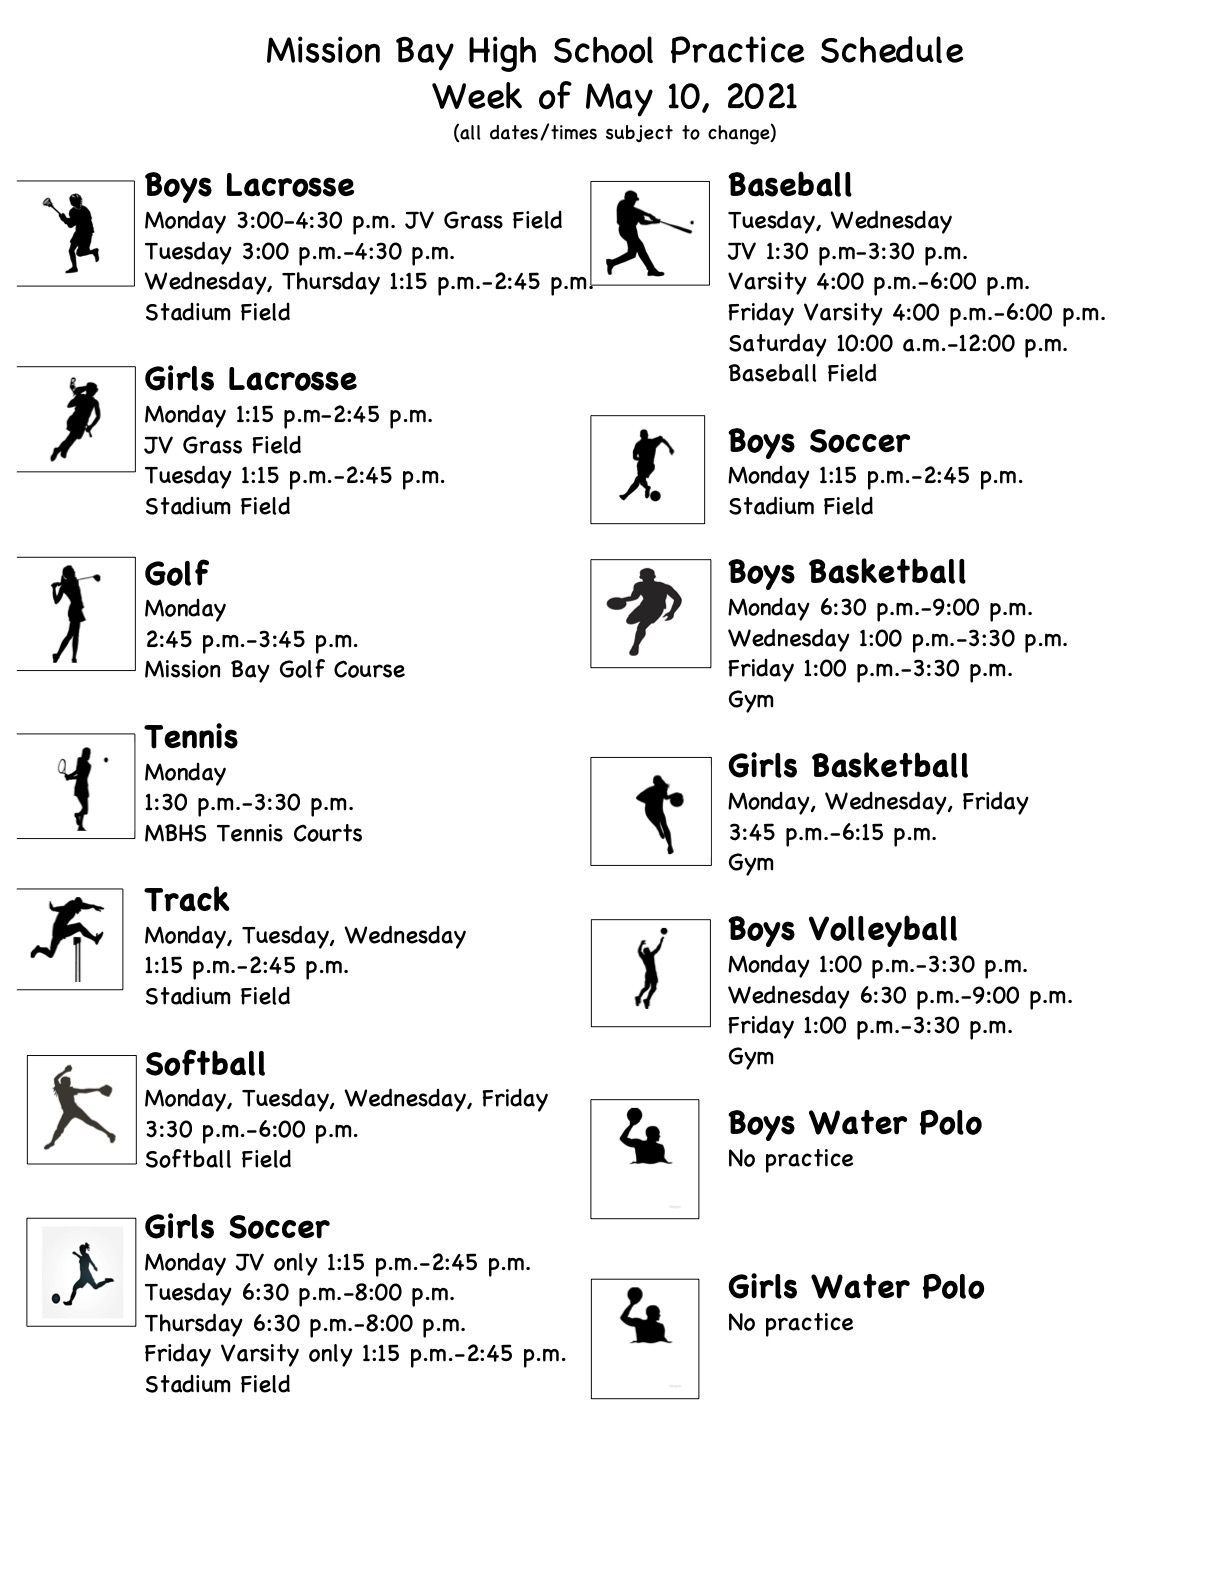 Practice Schedule for Week of May 10